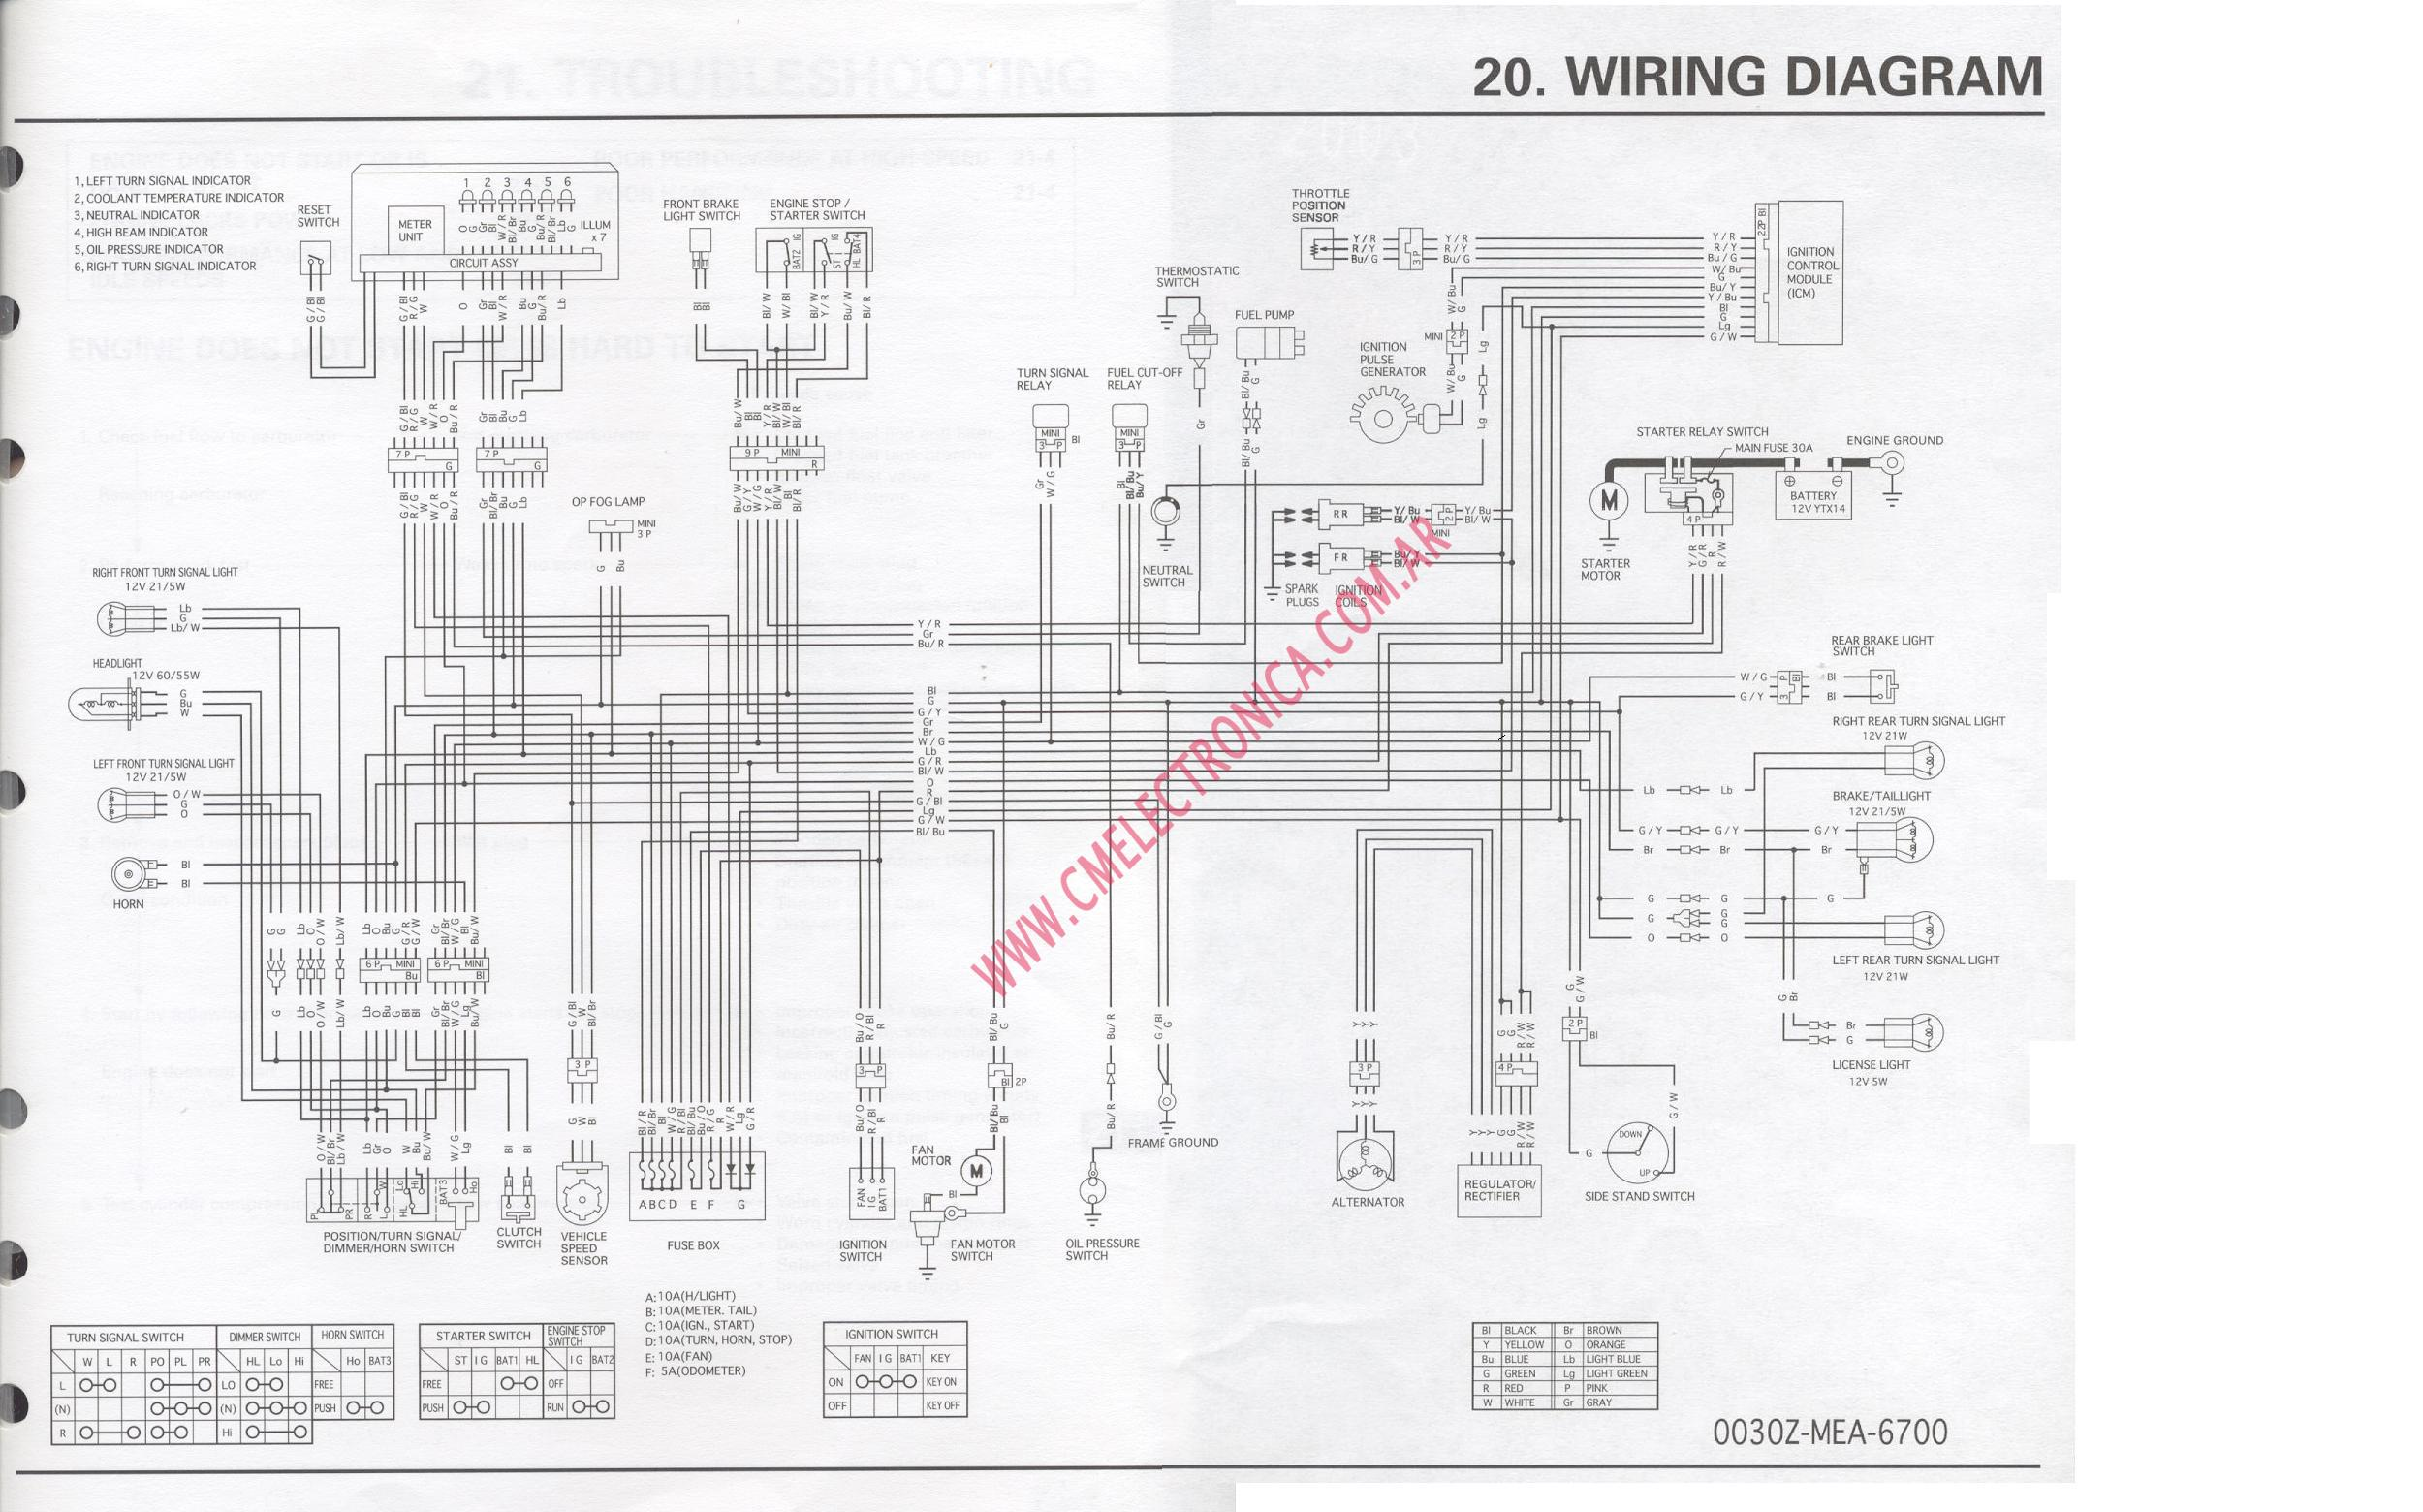 DIAGRAM] 2007 Honda Vtx1300c Wiring Diagram FULL Version HD Quality Wiring  Diagram - LYLE-DIAGRAM.RADD.FRDiagram Database - Radd